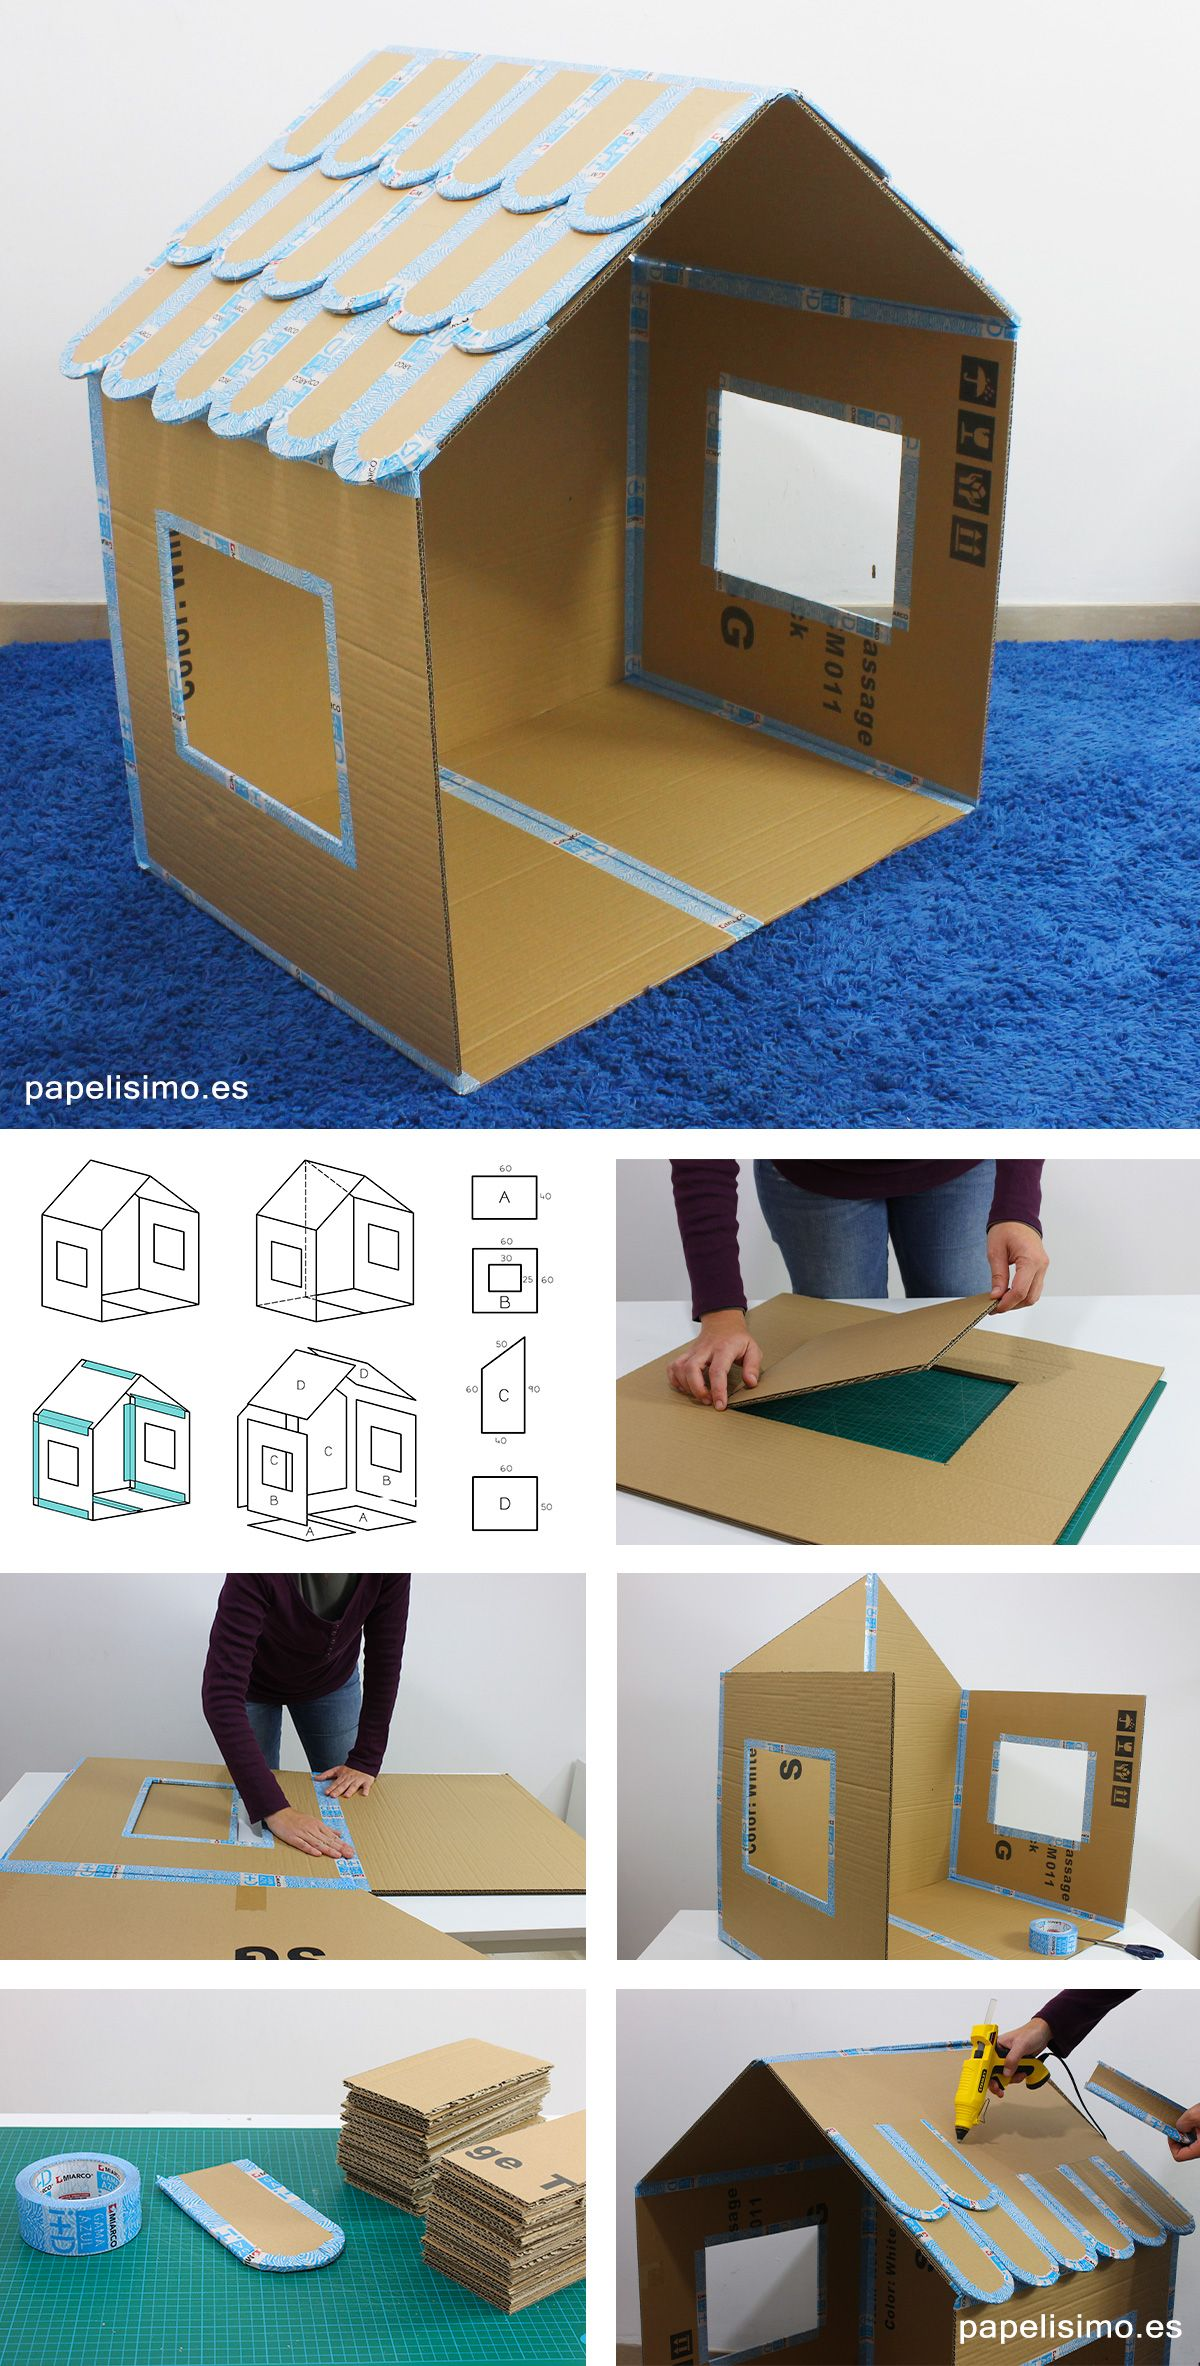 casa de carton plegable folding cardboard house diy dollhouse cardboard playhouse cardboard. Black Bedroom Furniture Sets. Home Design Ideas